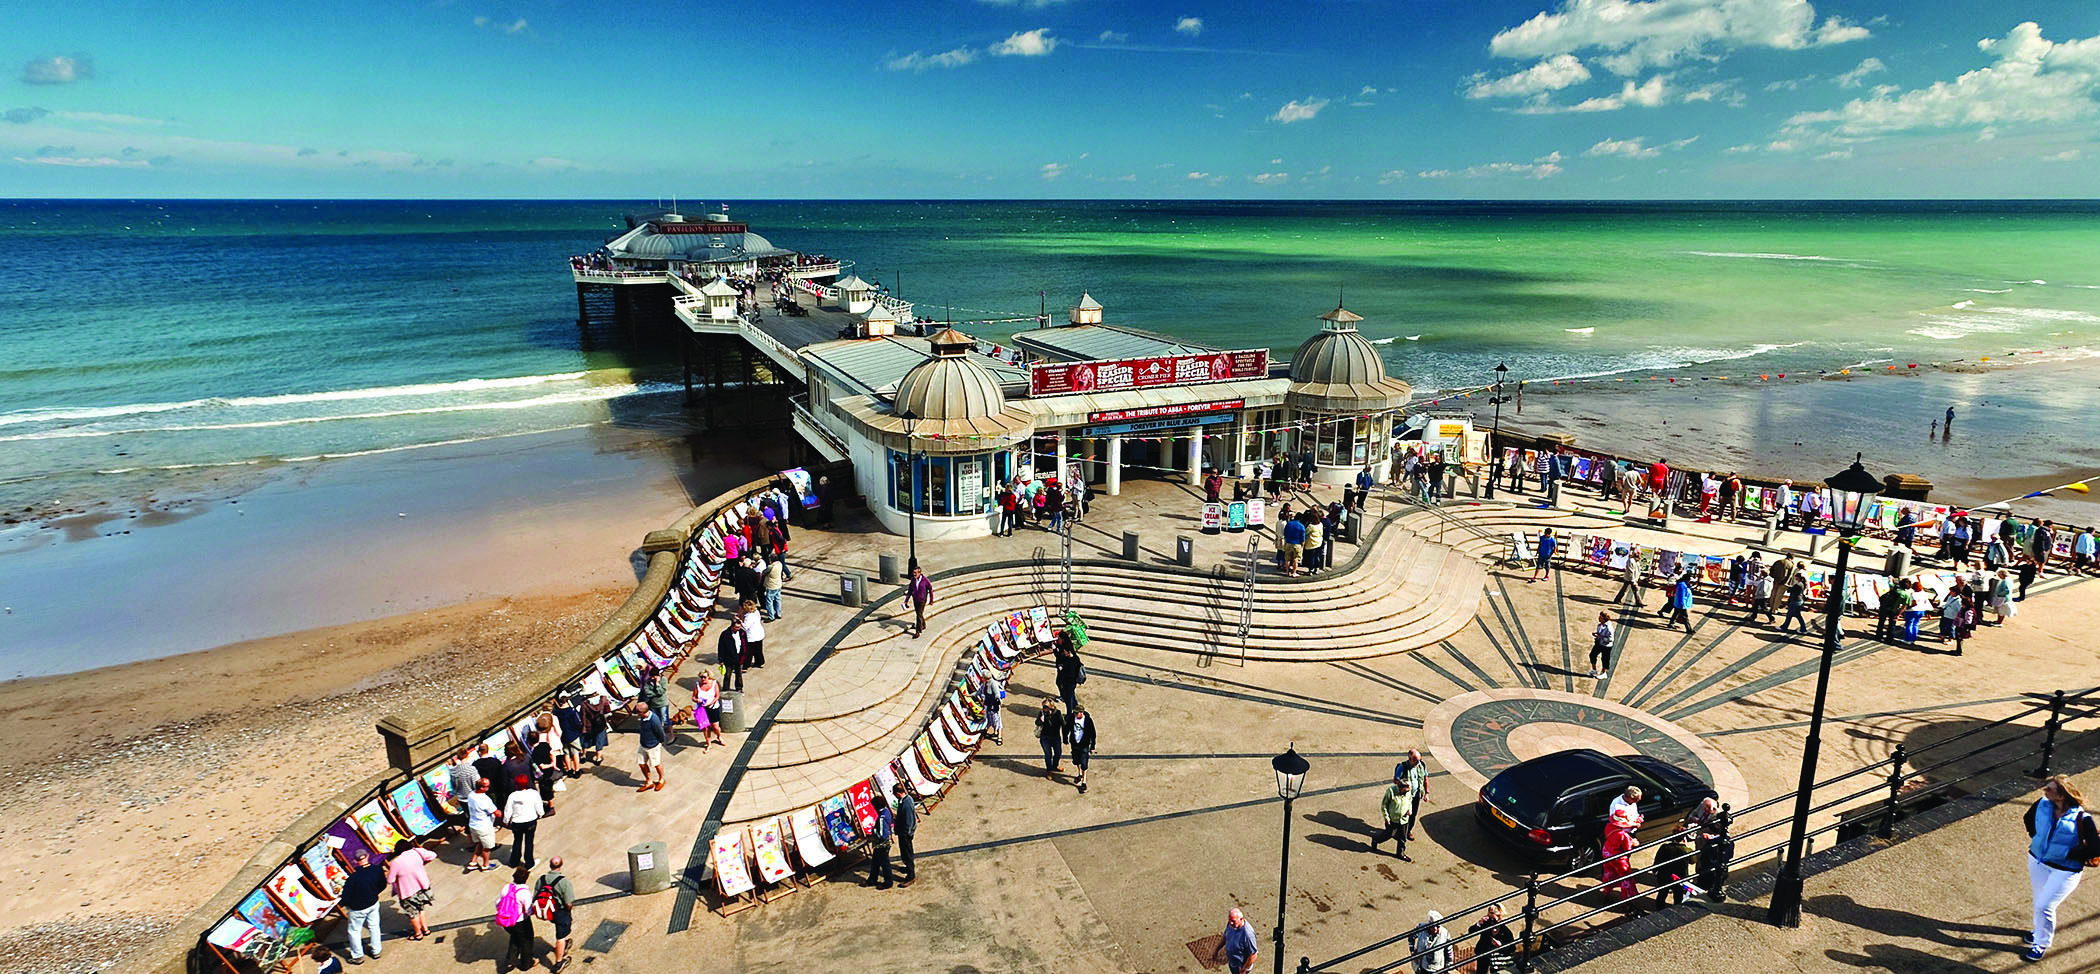 Cromer Pier from above